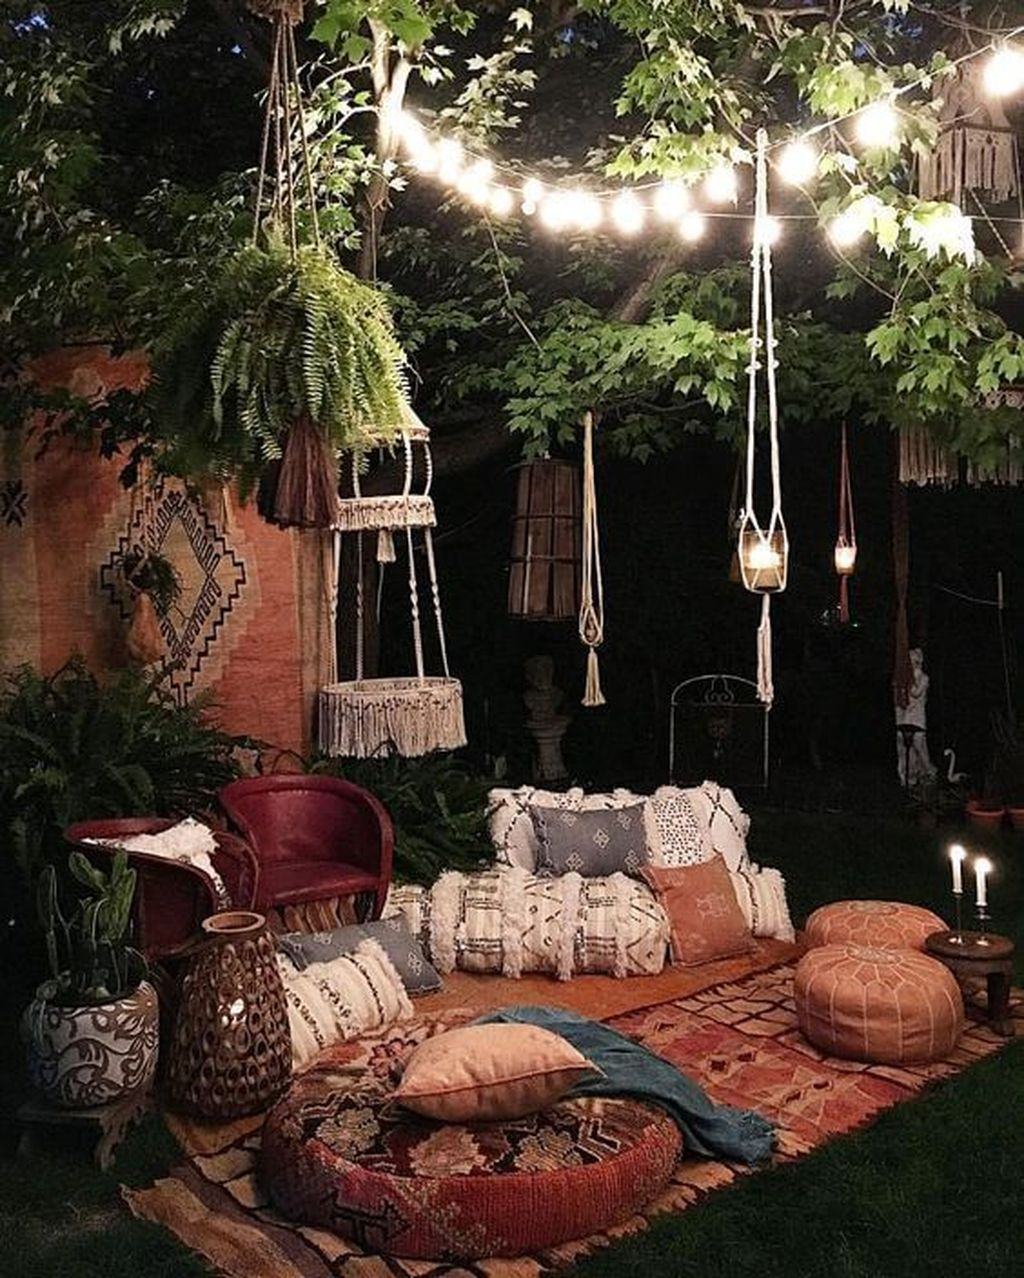 Inspiring Boho Outdoor Decorating Ideas For Backyard19